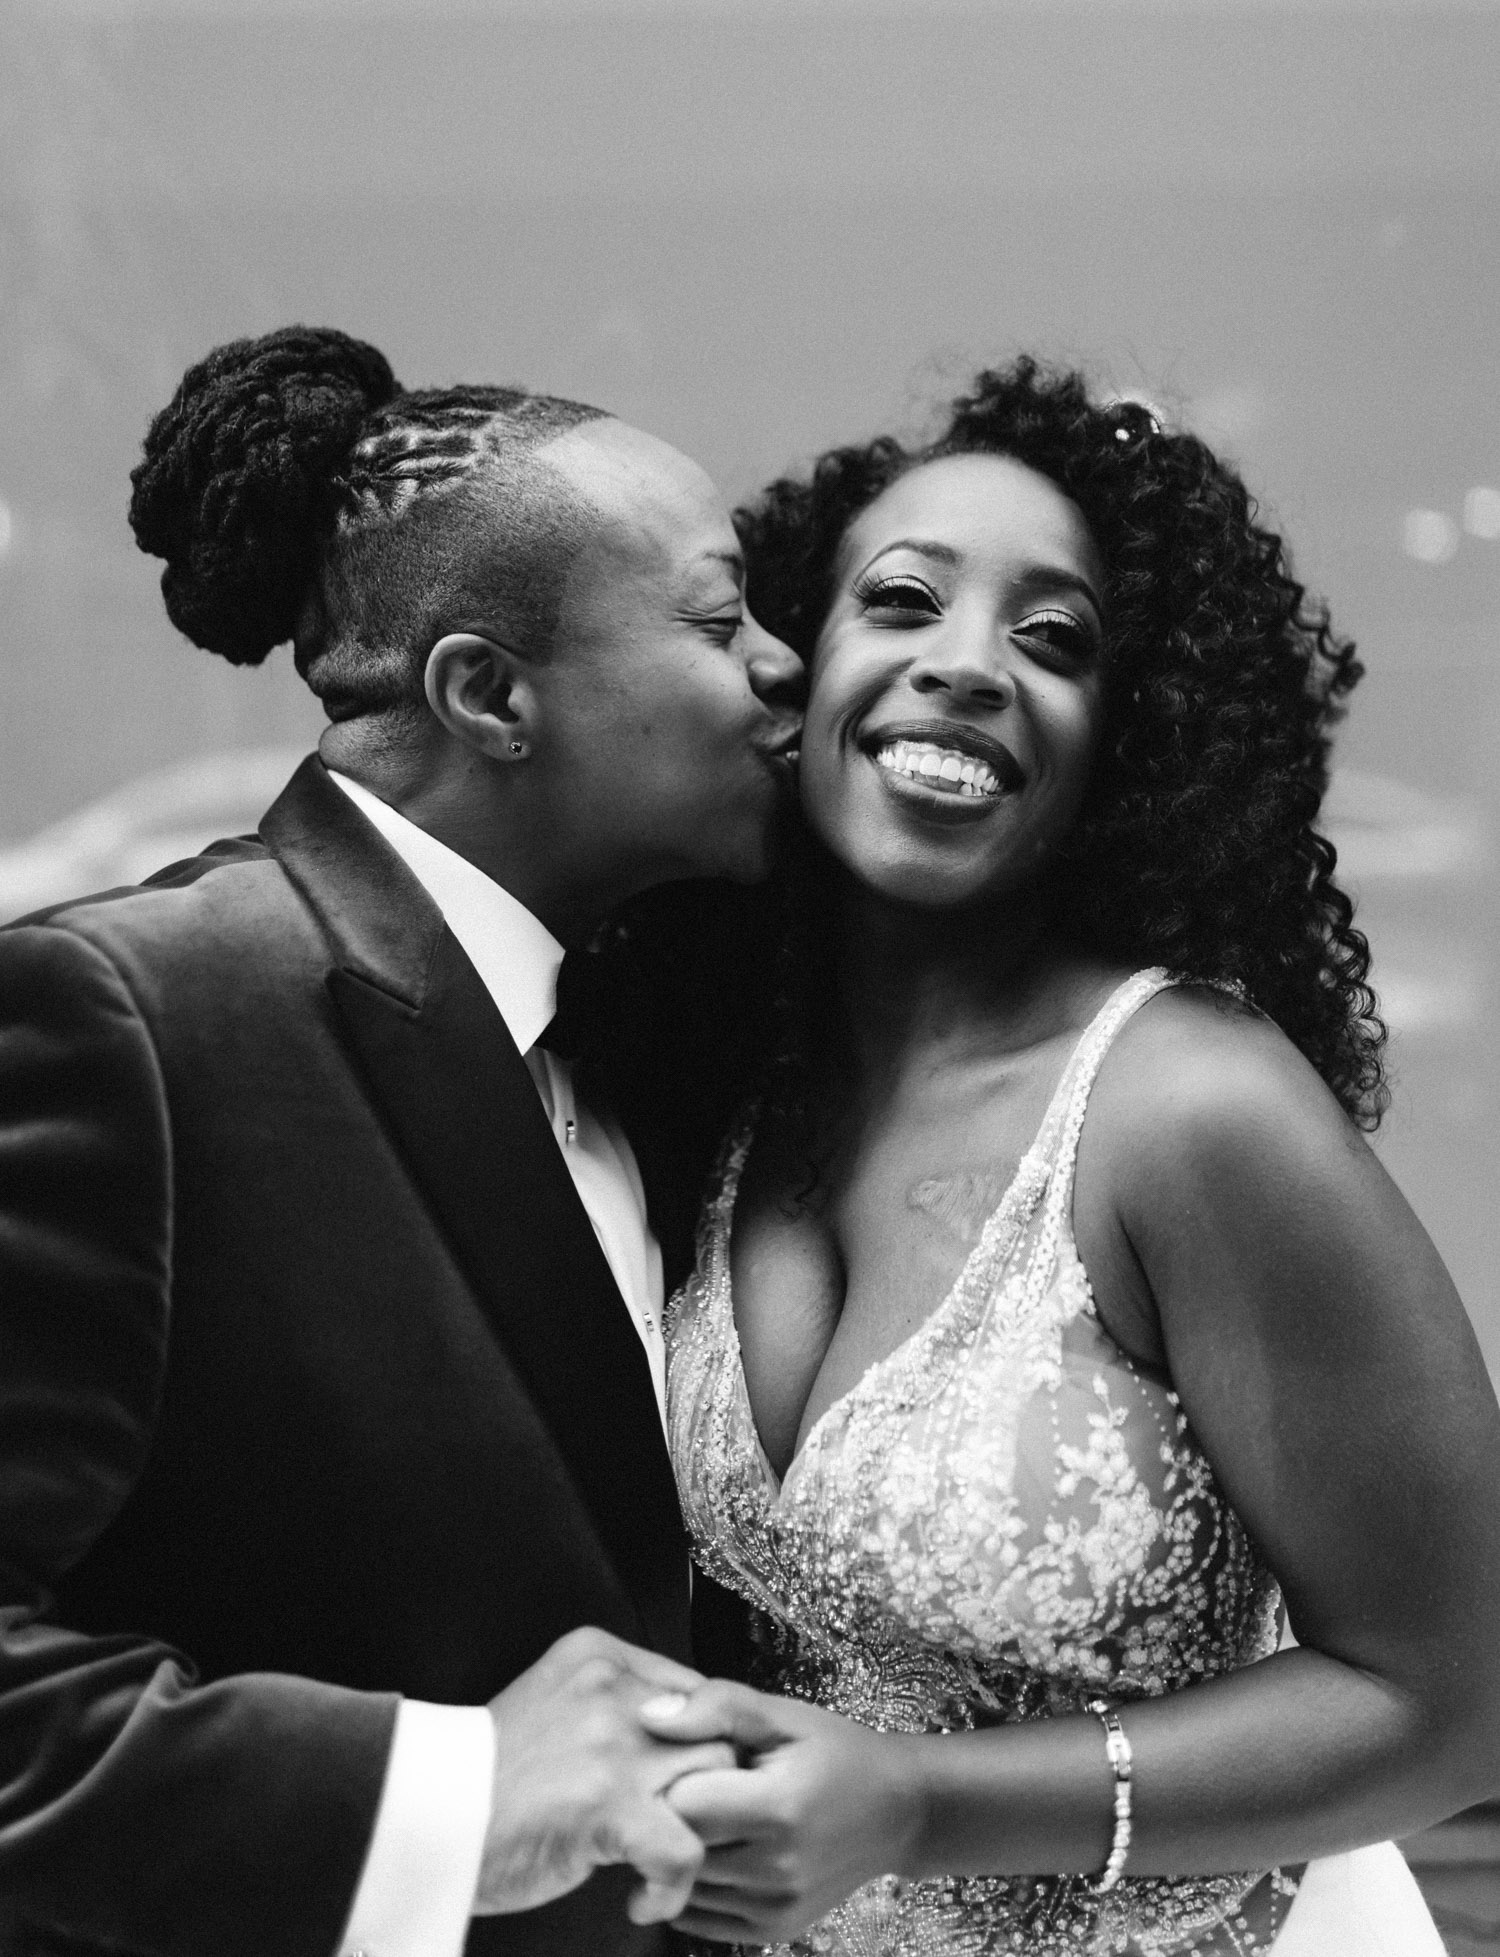 A black lesbian wedding couple embrace on the streets of New York City before their Brooklyn Winery wedding ceremony